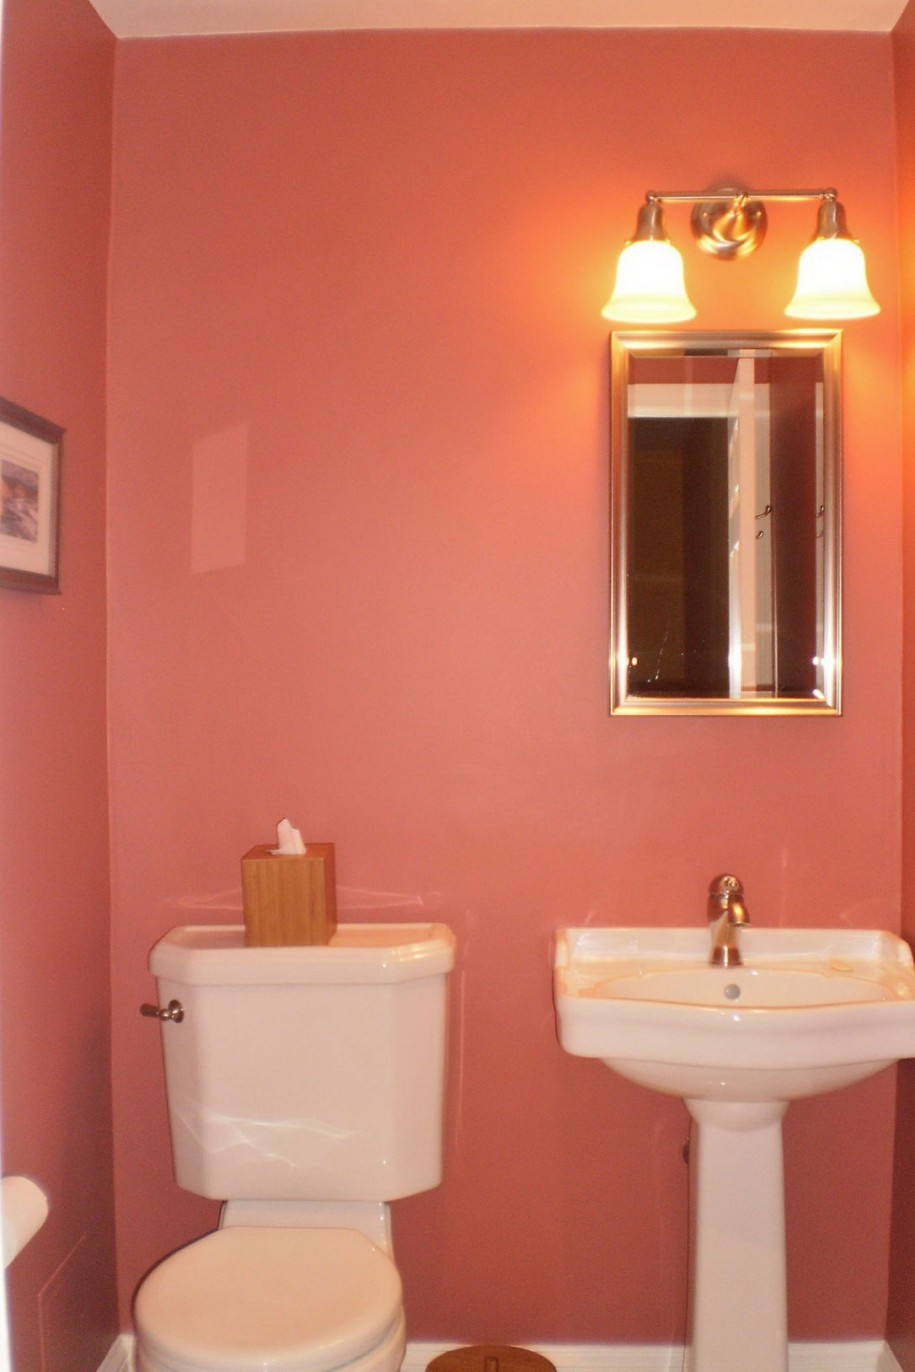 Bathroom Paint Ideas in Most Popular Colors - MidCityEast